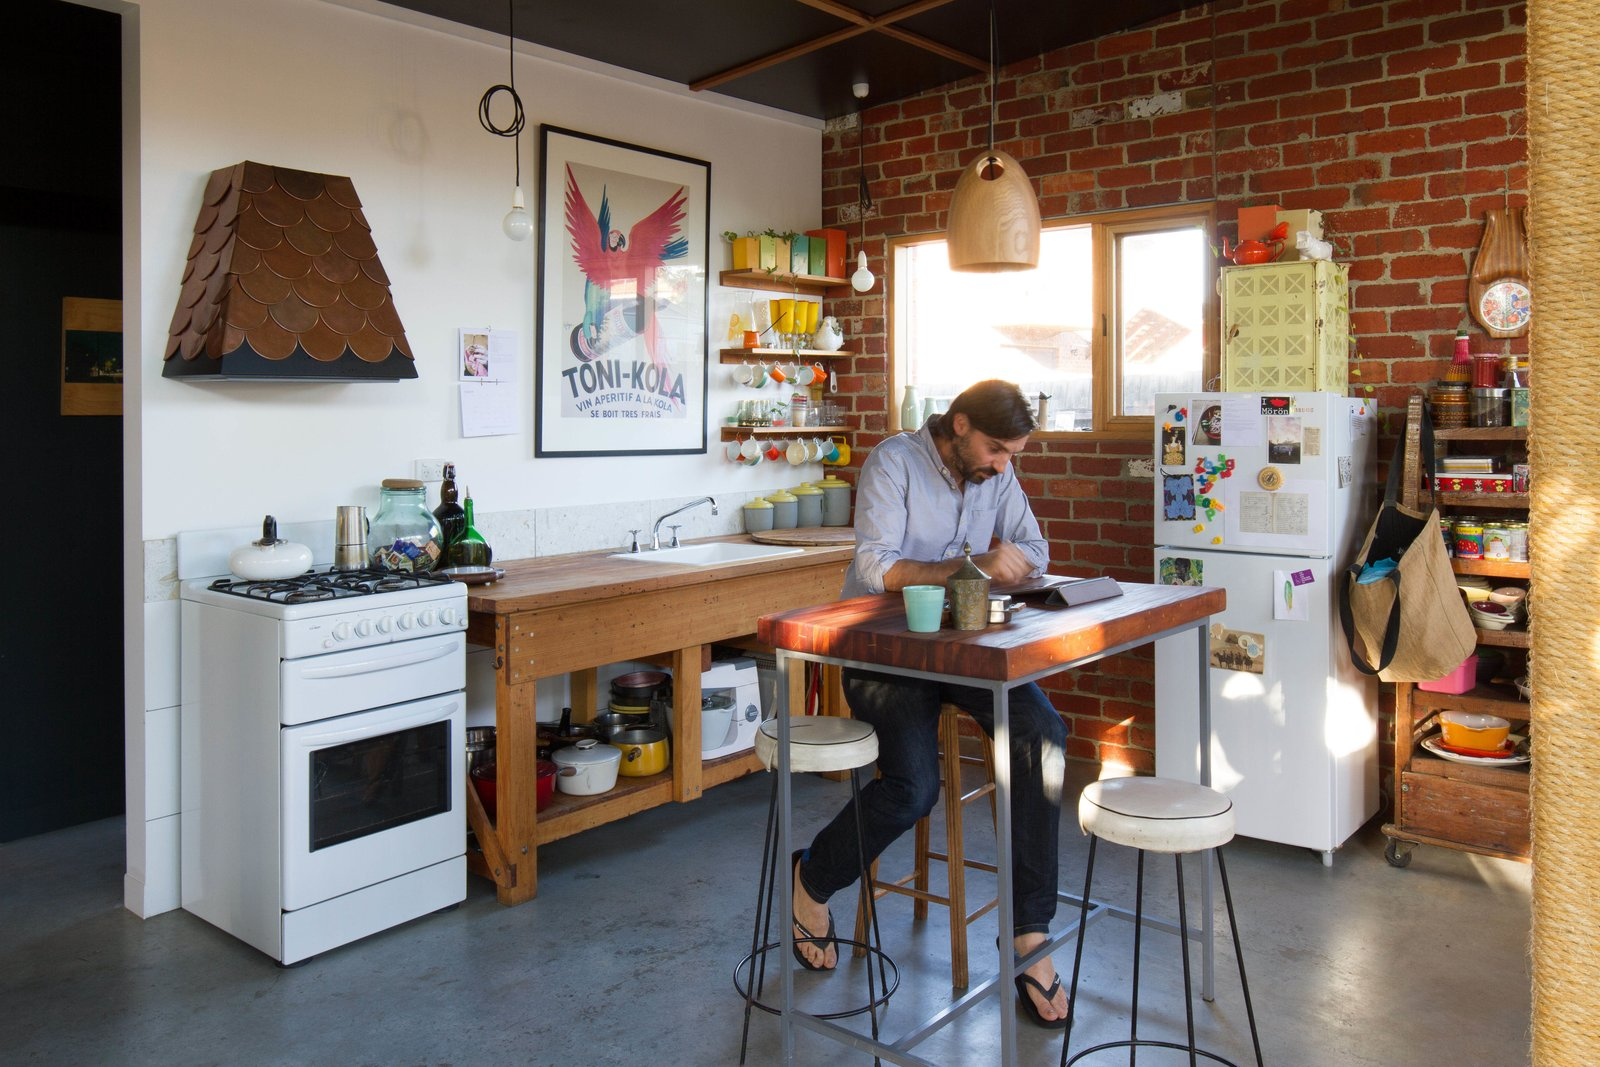 """Kitchen, Wood Counter, Wood Cabinet, Pendant Lighting, and Concrete Floor Fuscaldo and Krien found an old workbench and used the wood to create the counter around the kitchen sink. Photo by Nic Granleese.  Search """"glass house australia's sunshine coast"""" from An Australian Architect's Simple Brick House With Impressive Green Roof"""